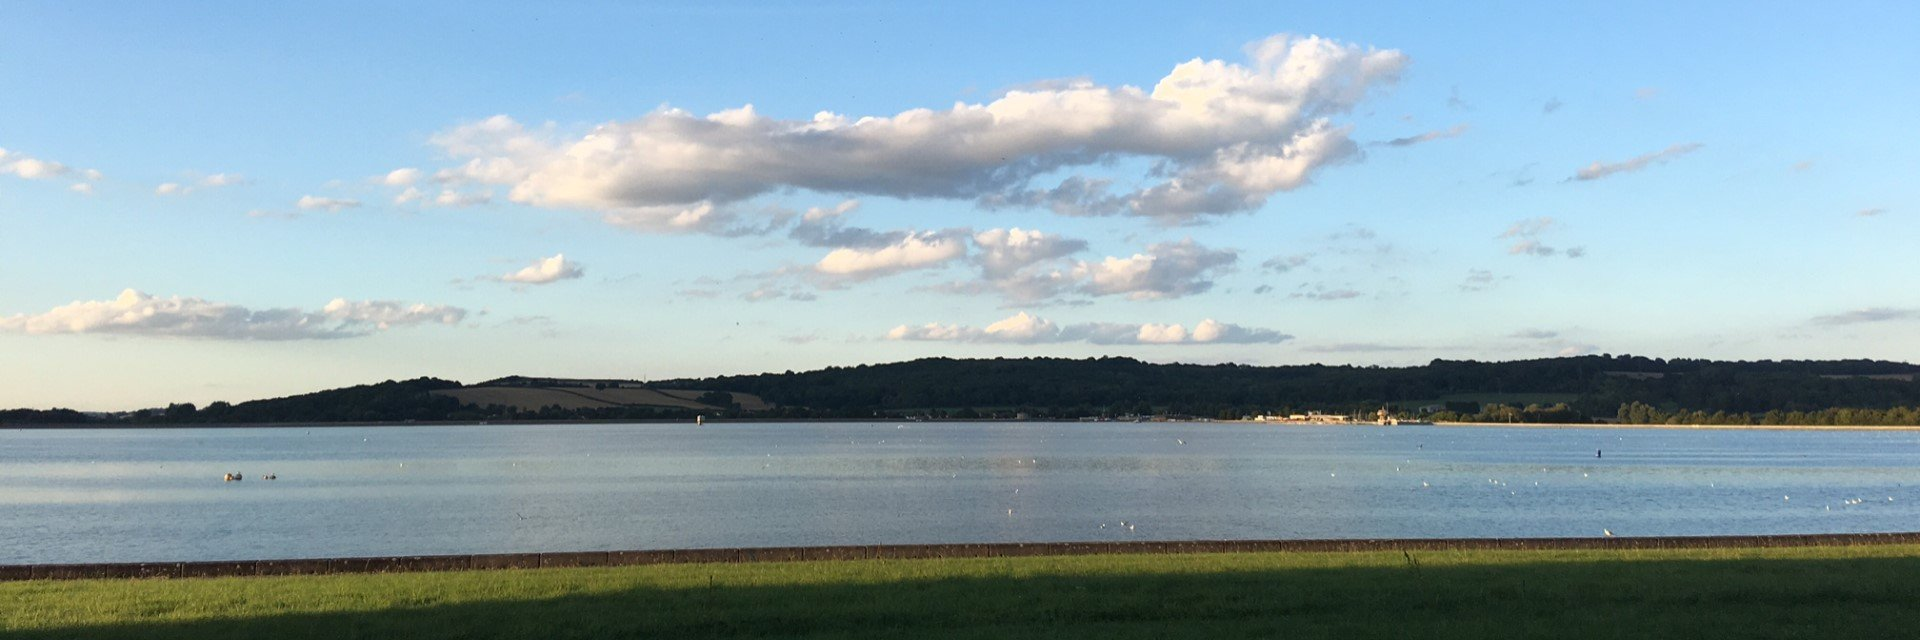 Great Days Out: Panoramic View of Farmoor Reservoir in Oxfordshire